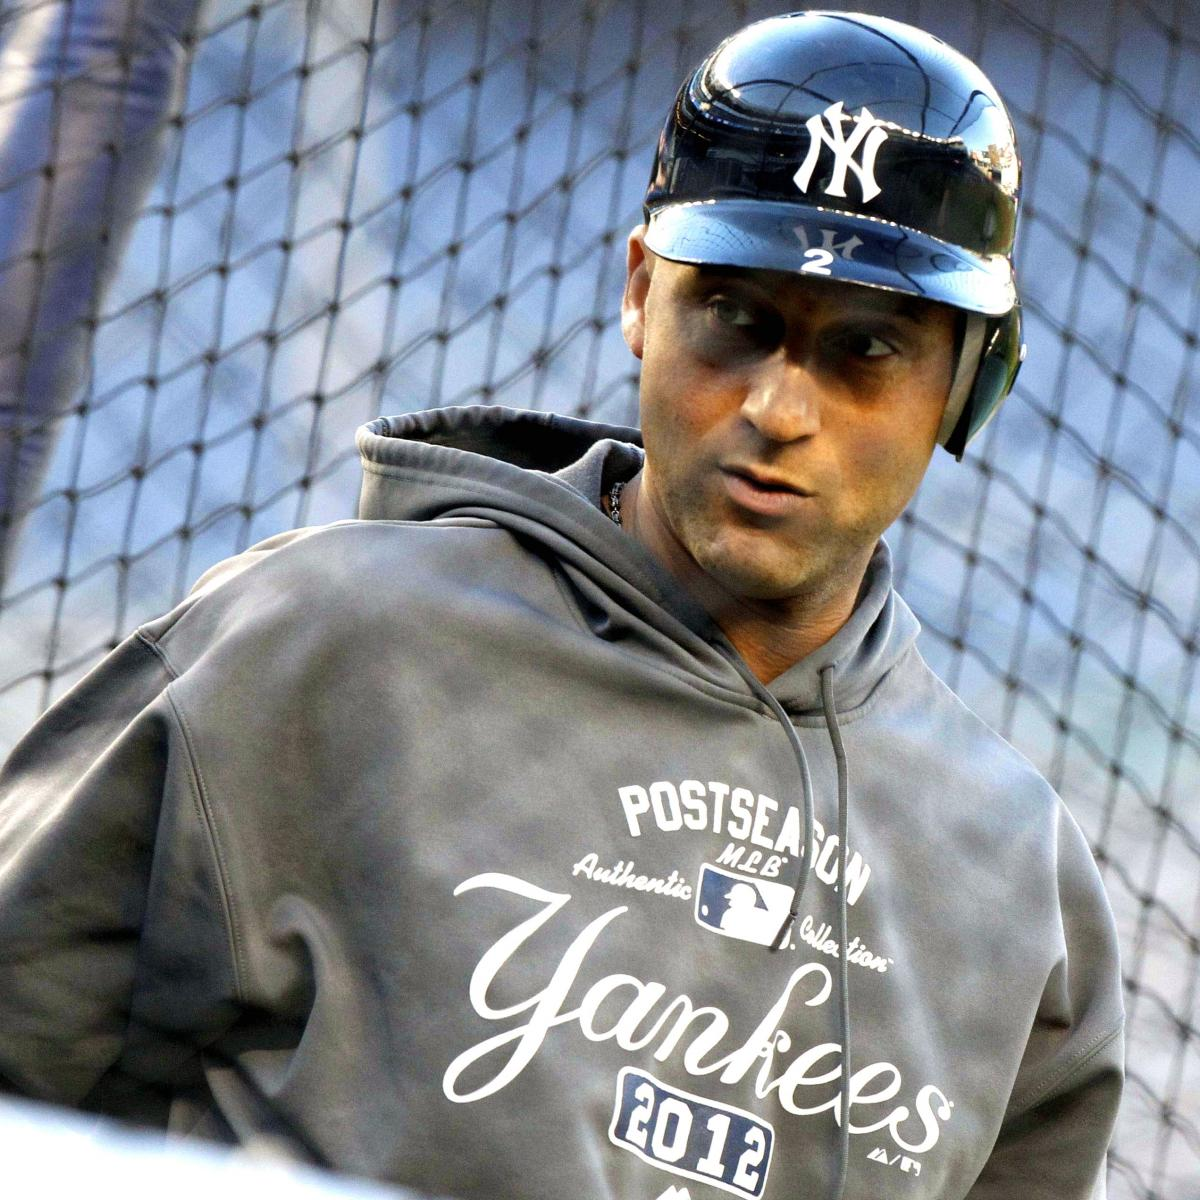 Is Post-All-Star Break Derek Jeter Return Realistic After